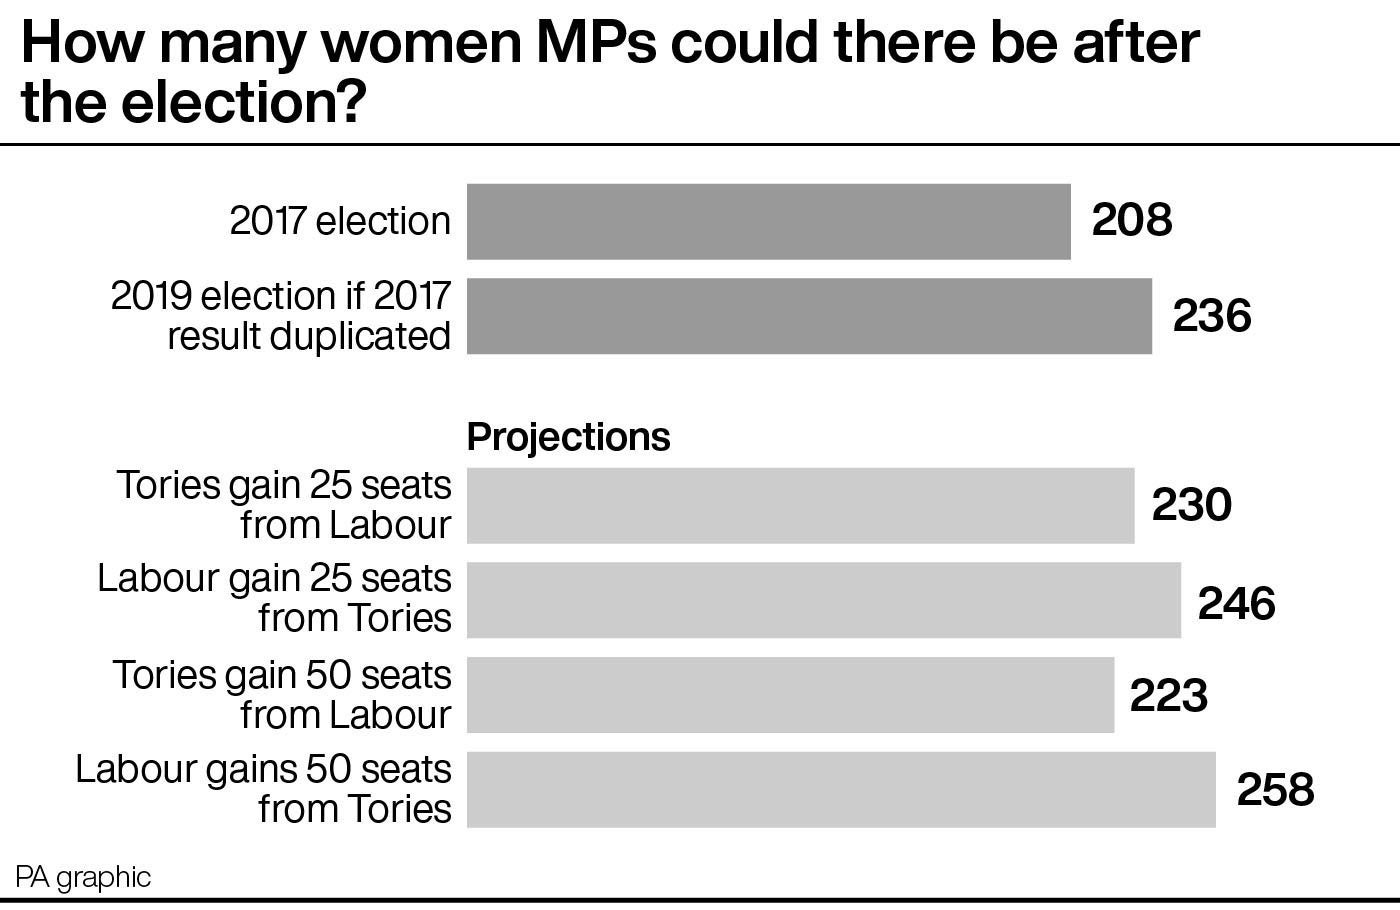 How many women MPs could there be after the election?